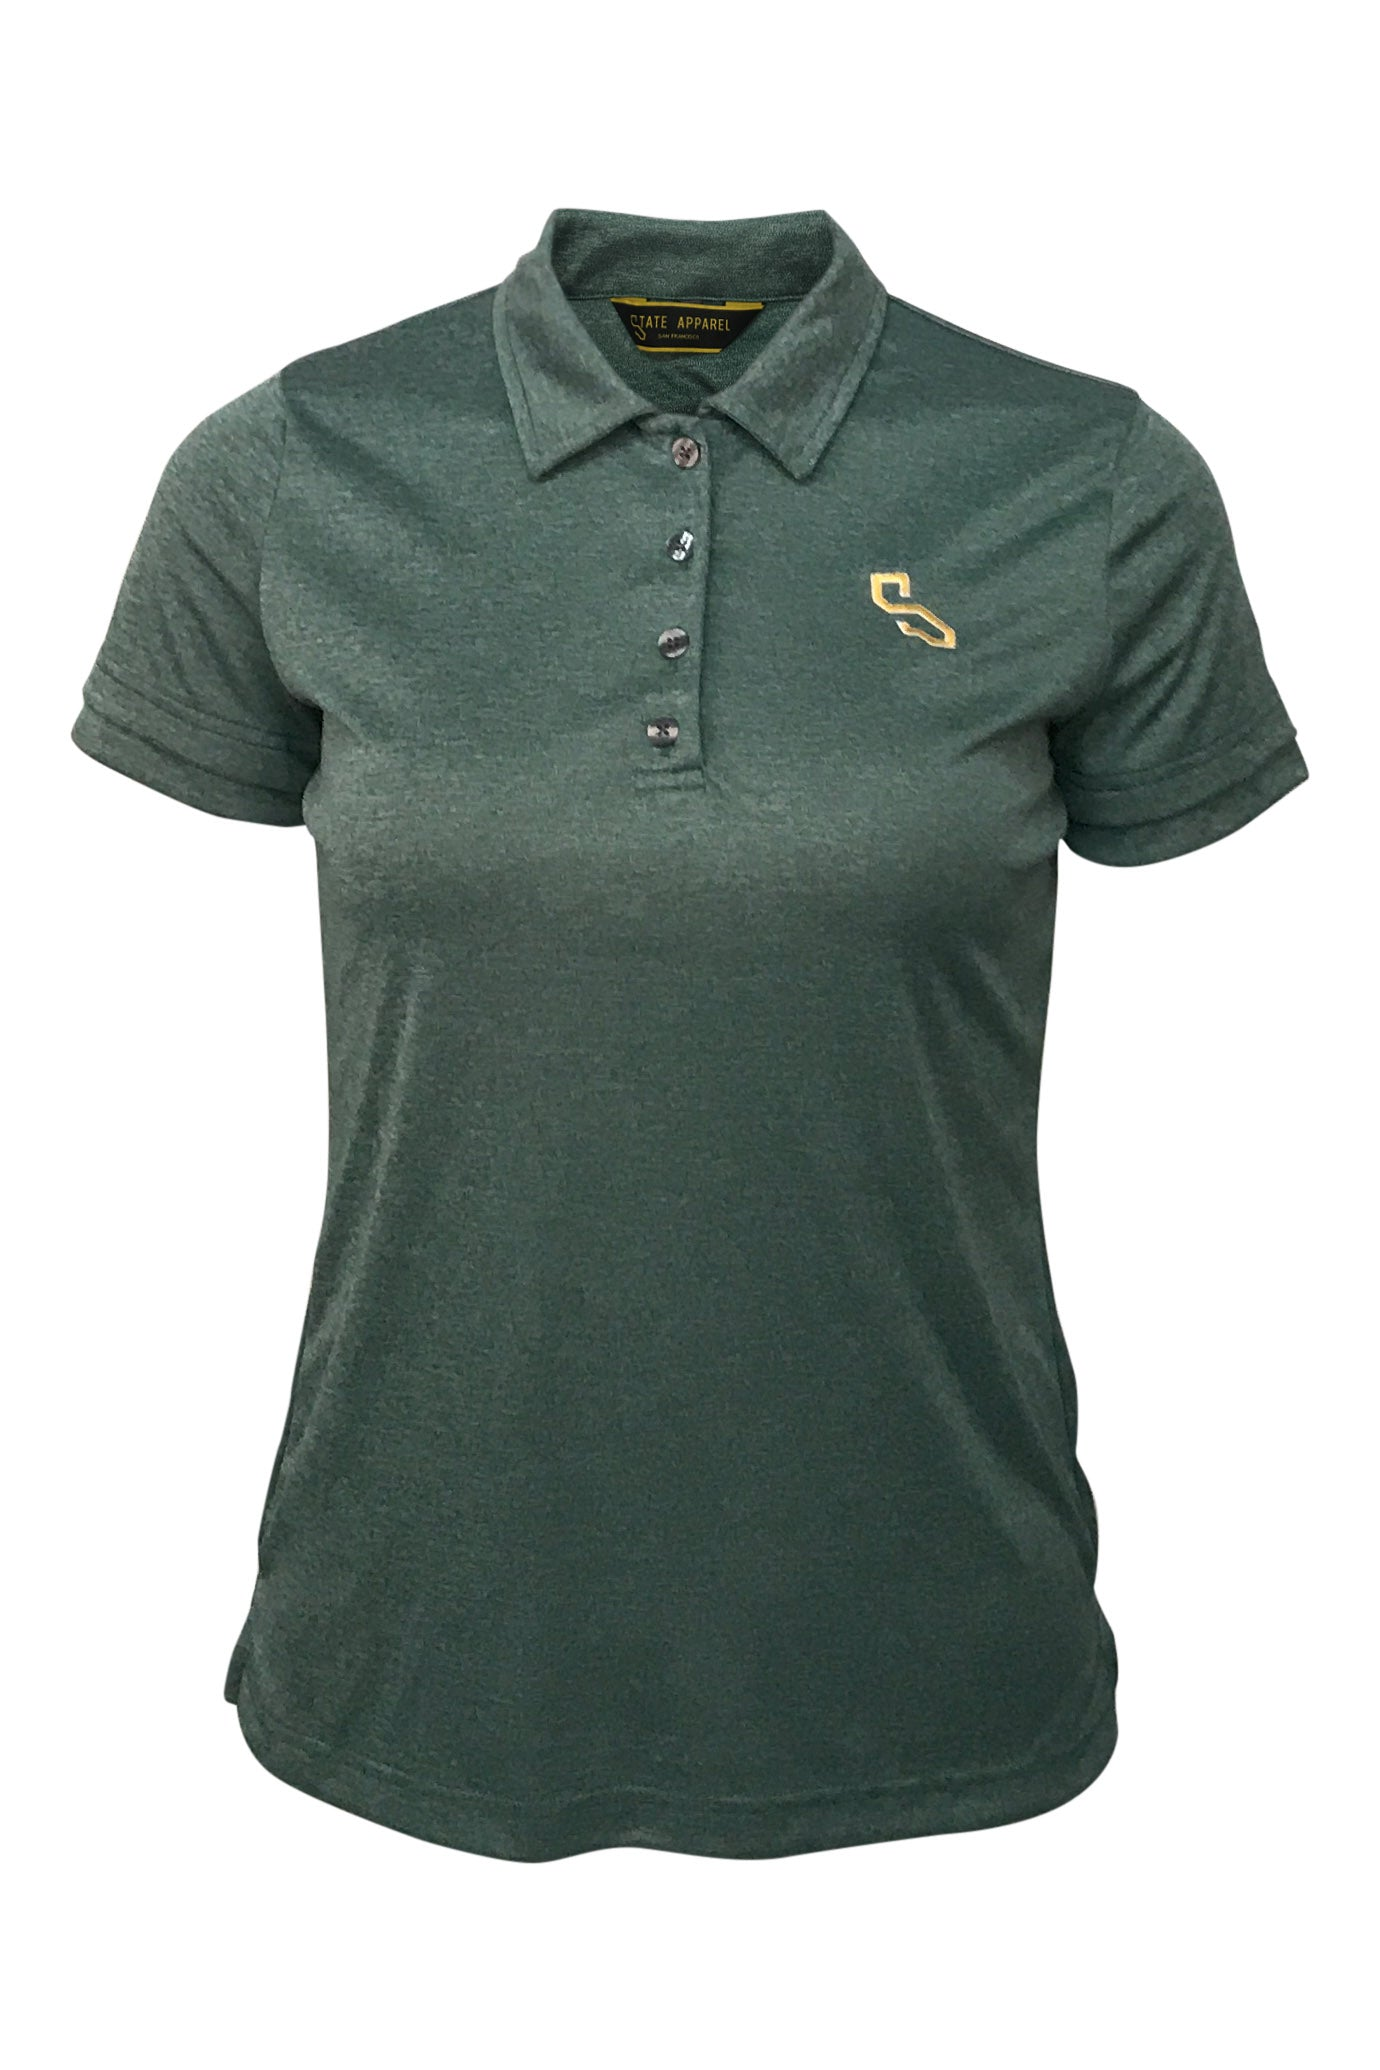 PIXLEY POLO - GREEN